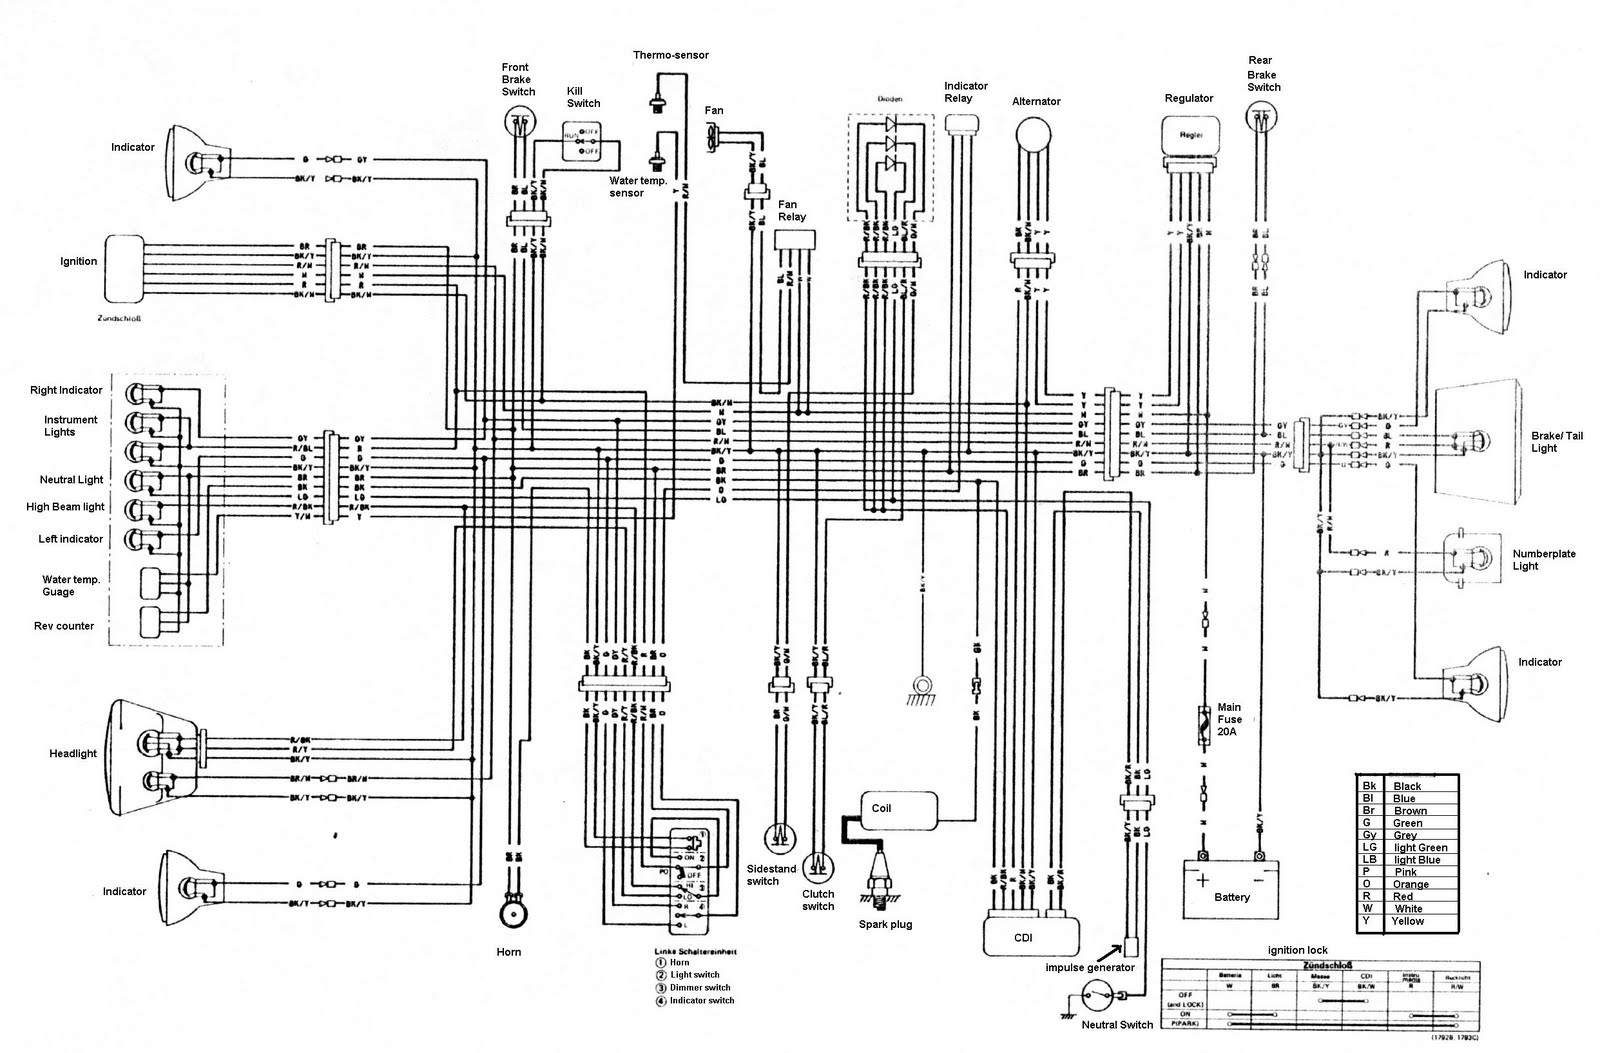 [DIAGRAM] Kawasaki 185 Wiring Diagram FULL Version HD